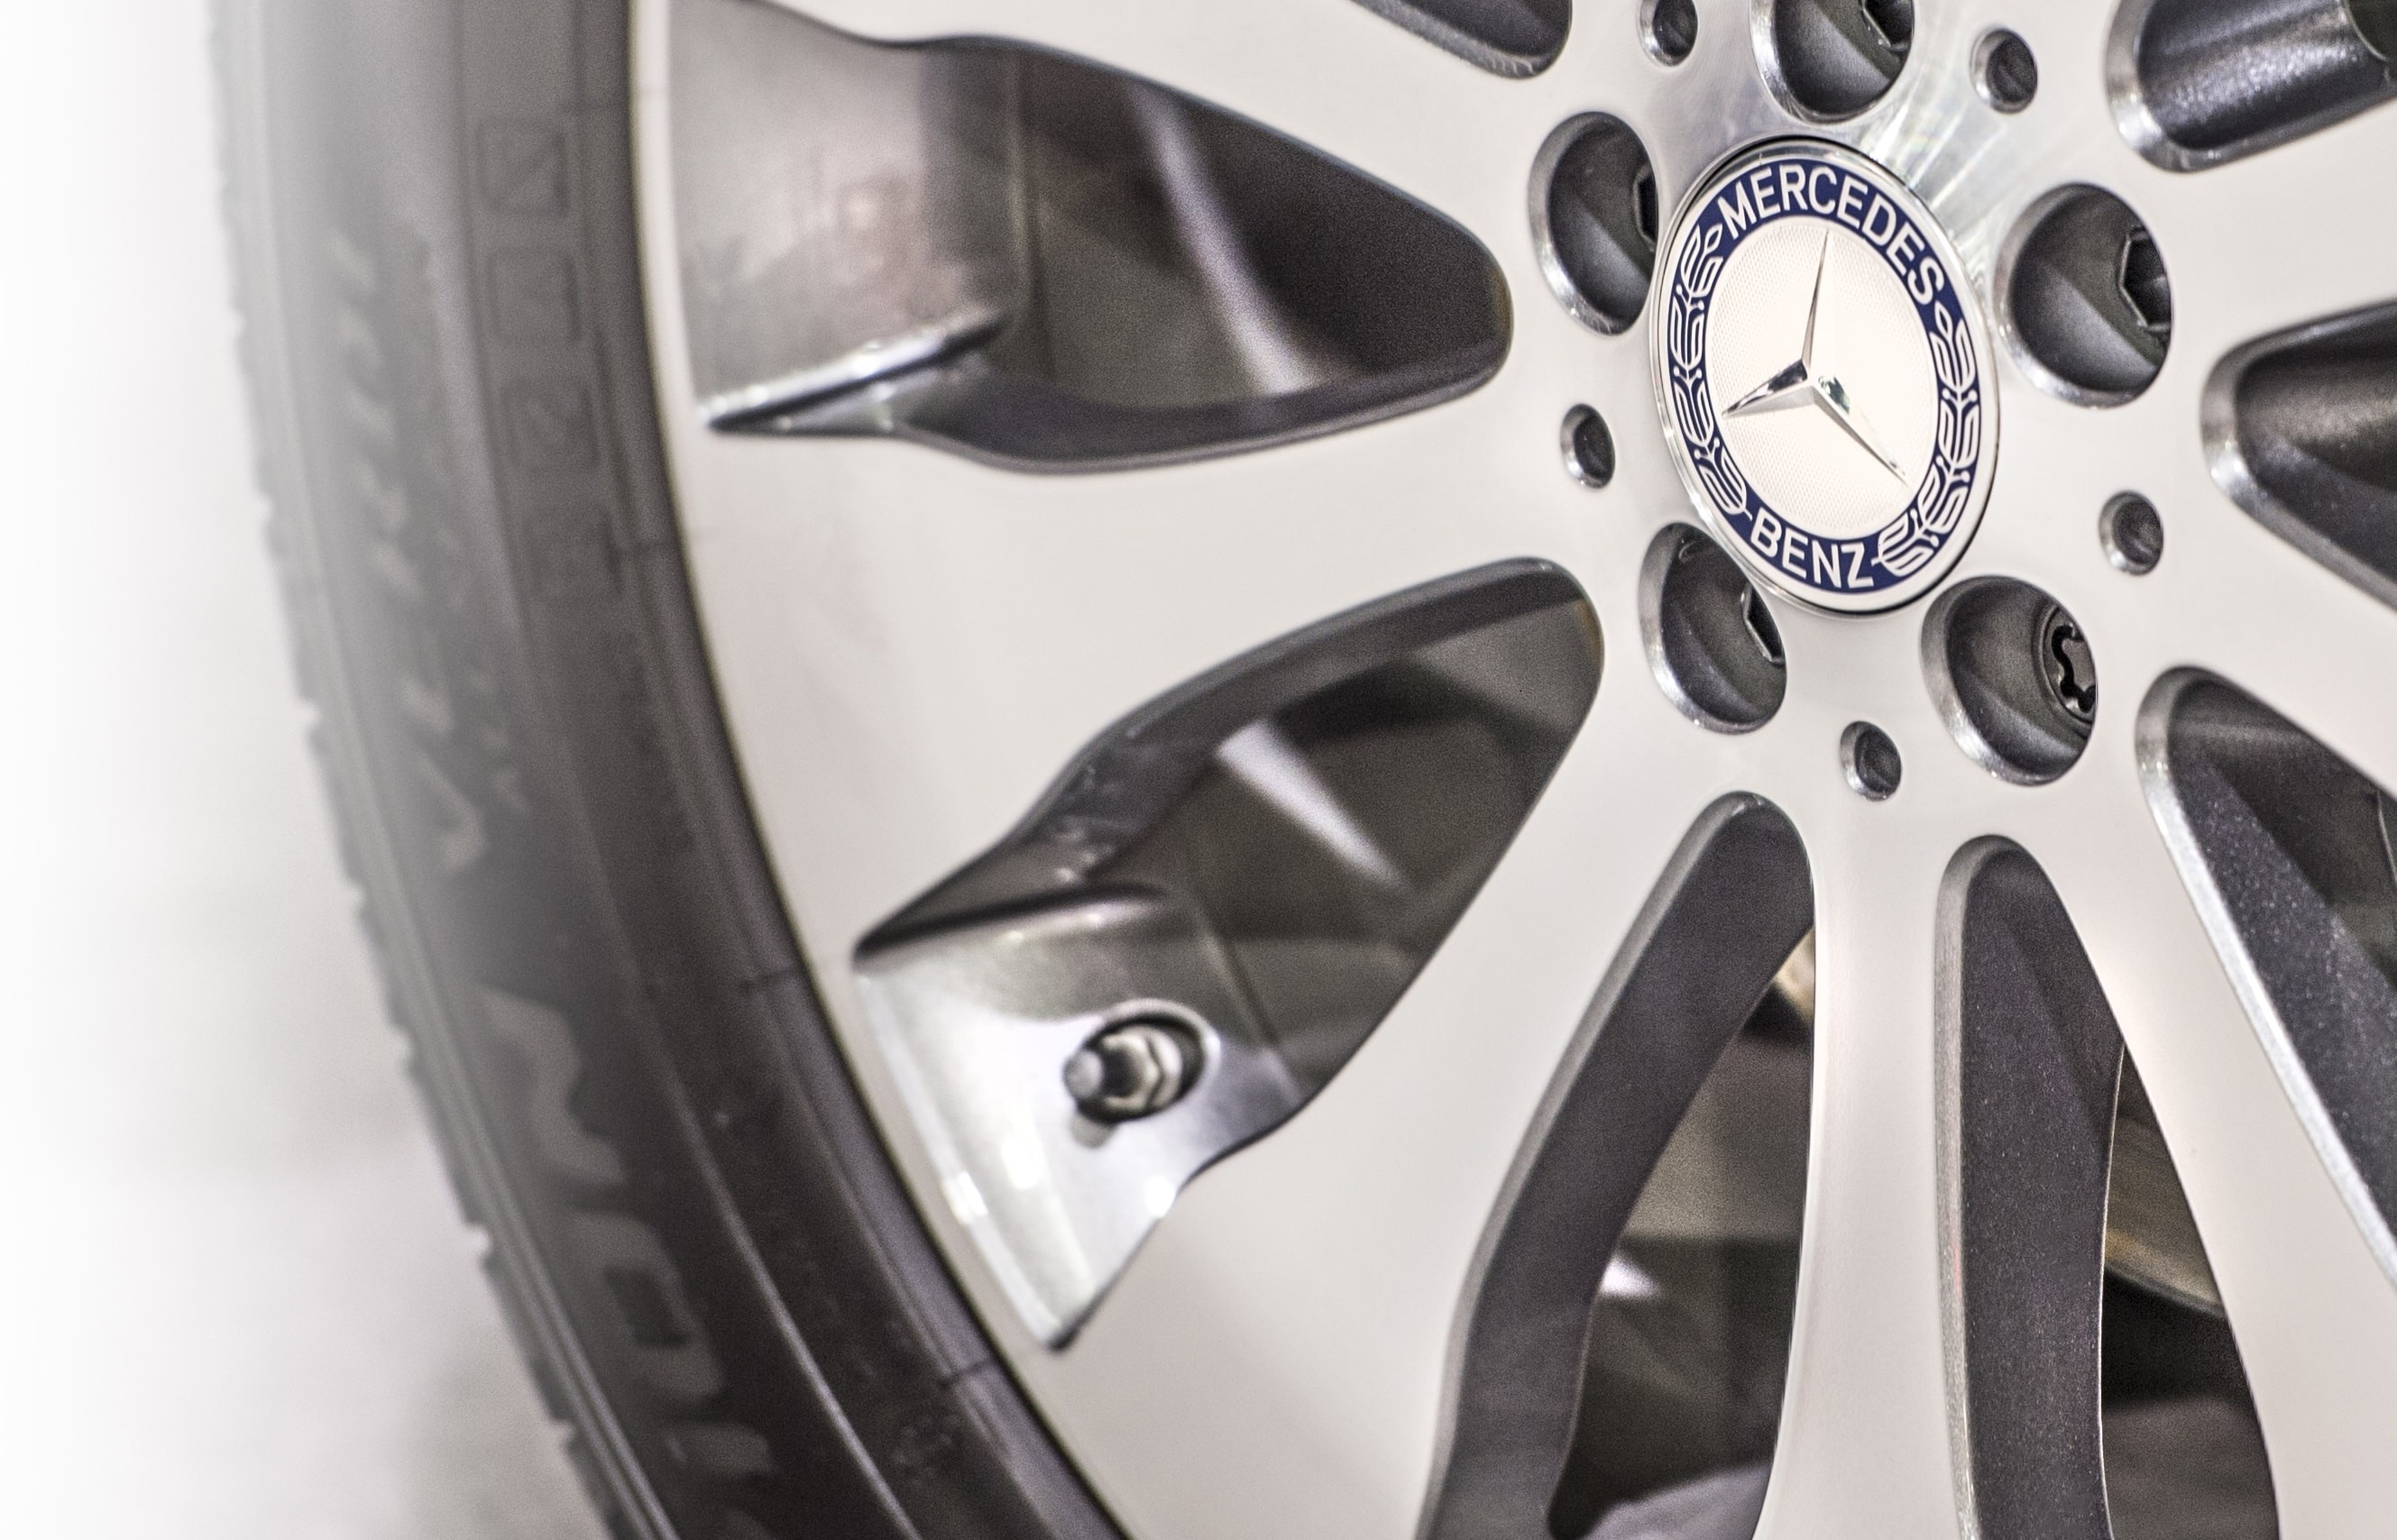 Mercedes-Benz Rim Close up